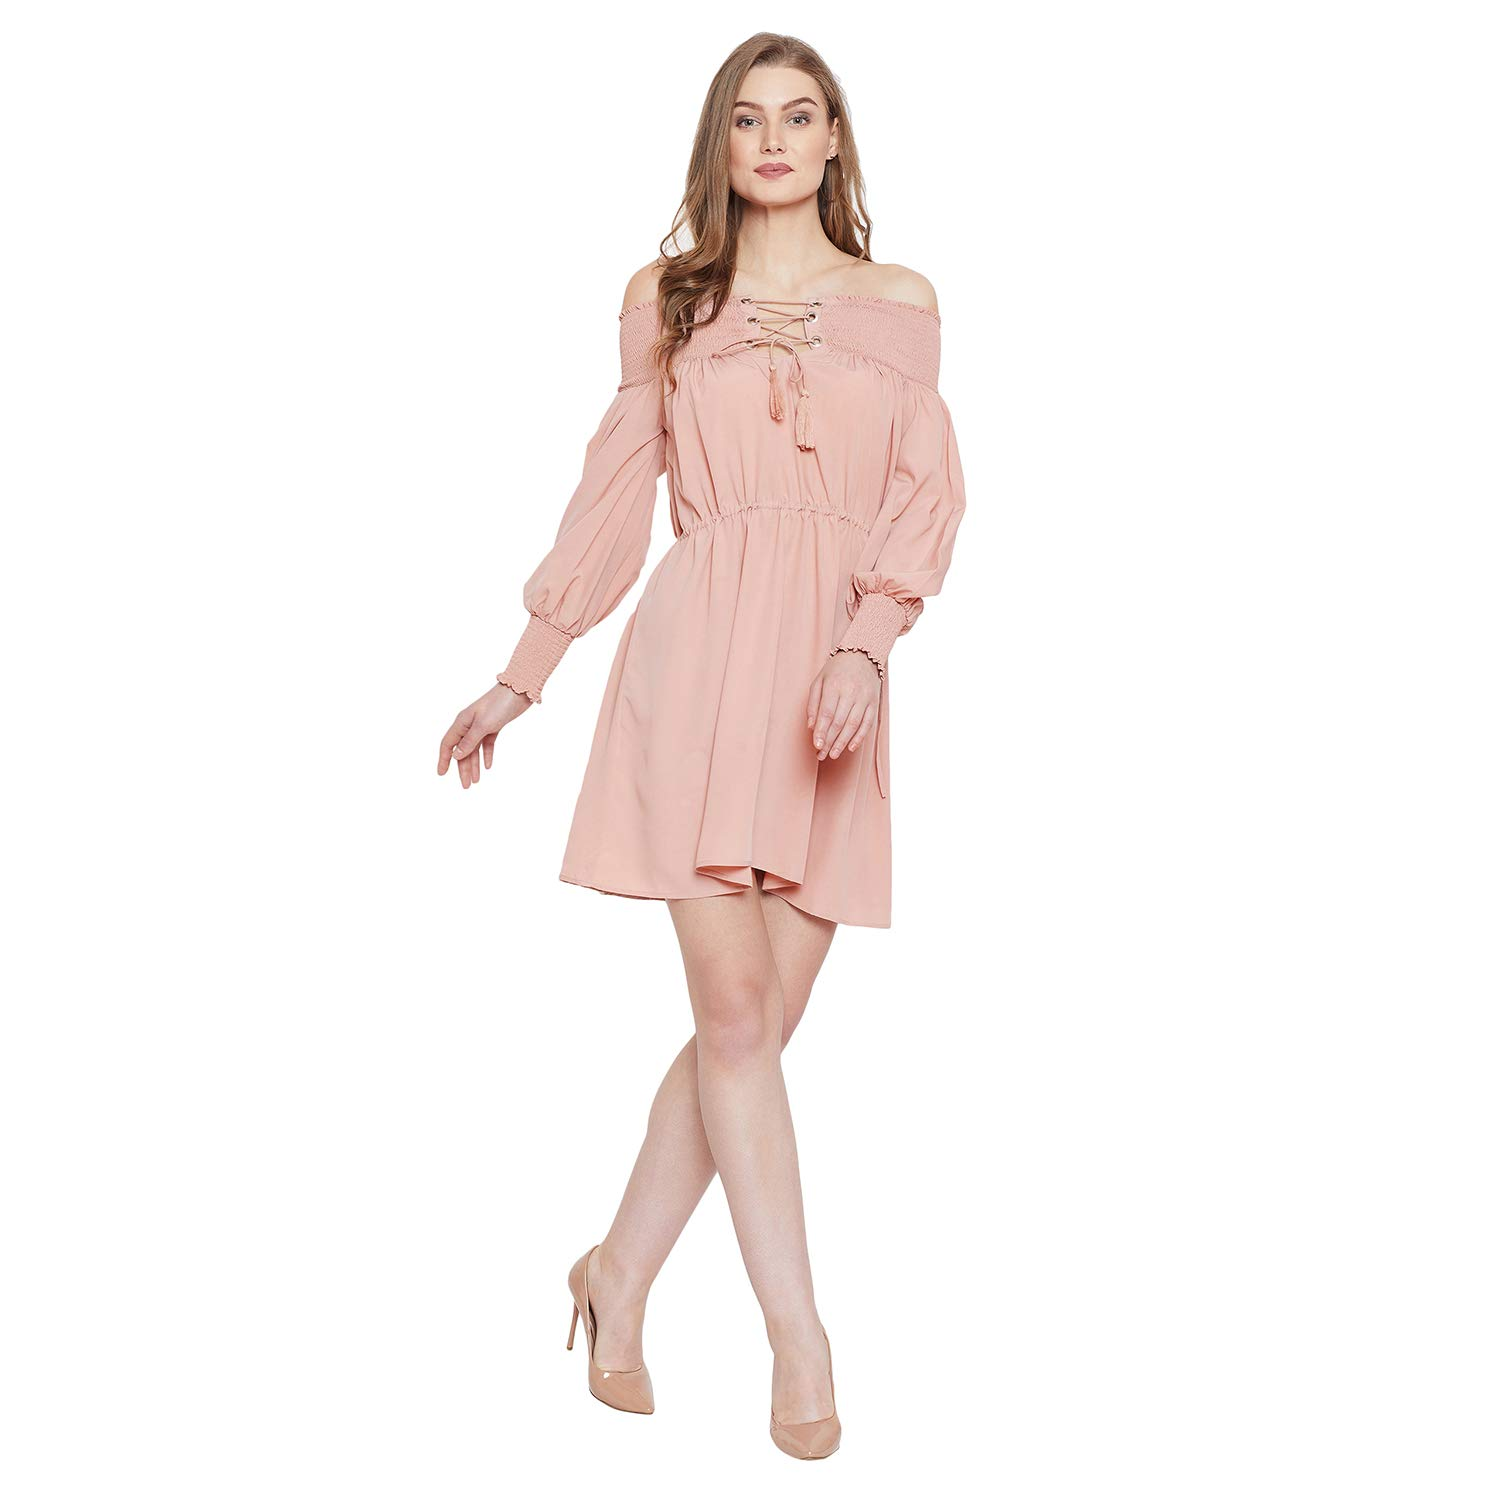 Upto 60% Discount on Women's Wear from PANIT @ Amazon